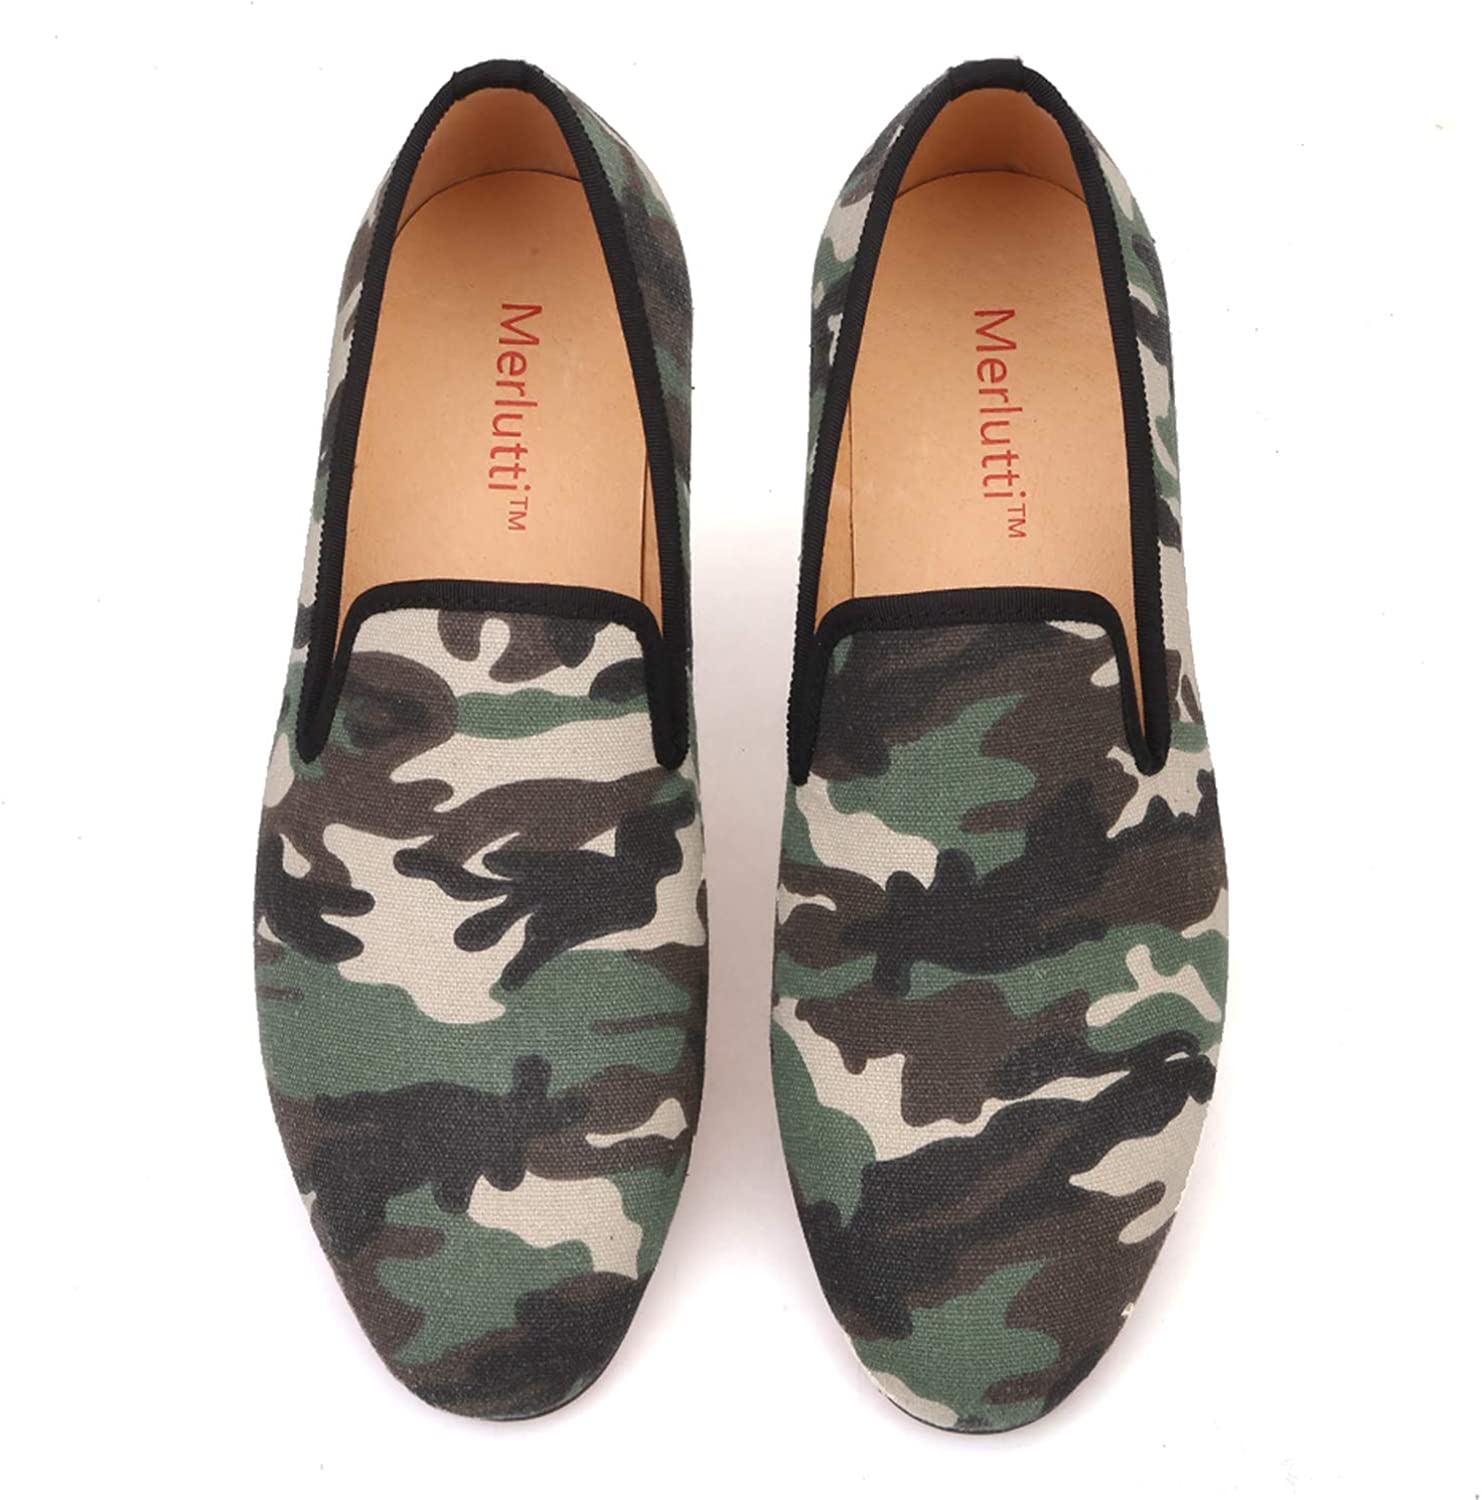 Merlutti Camouflage Casual Loafers Men Green Camo Street Style Shoes